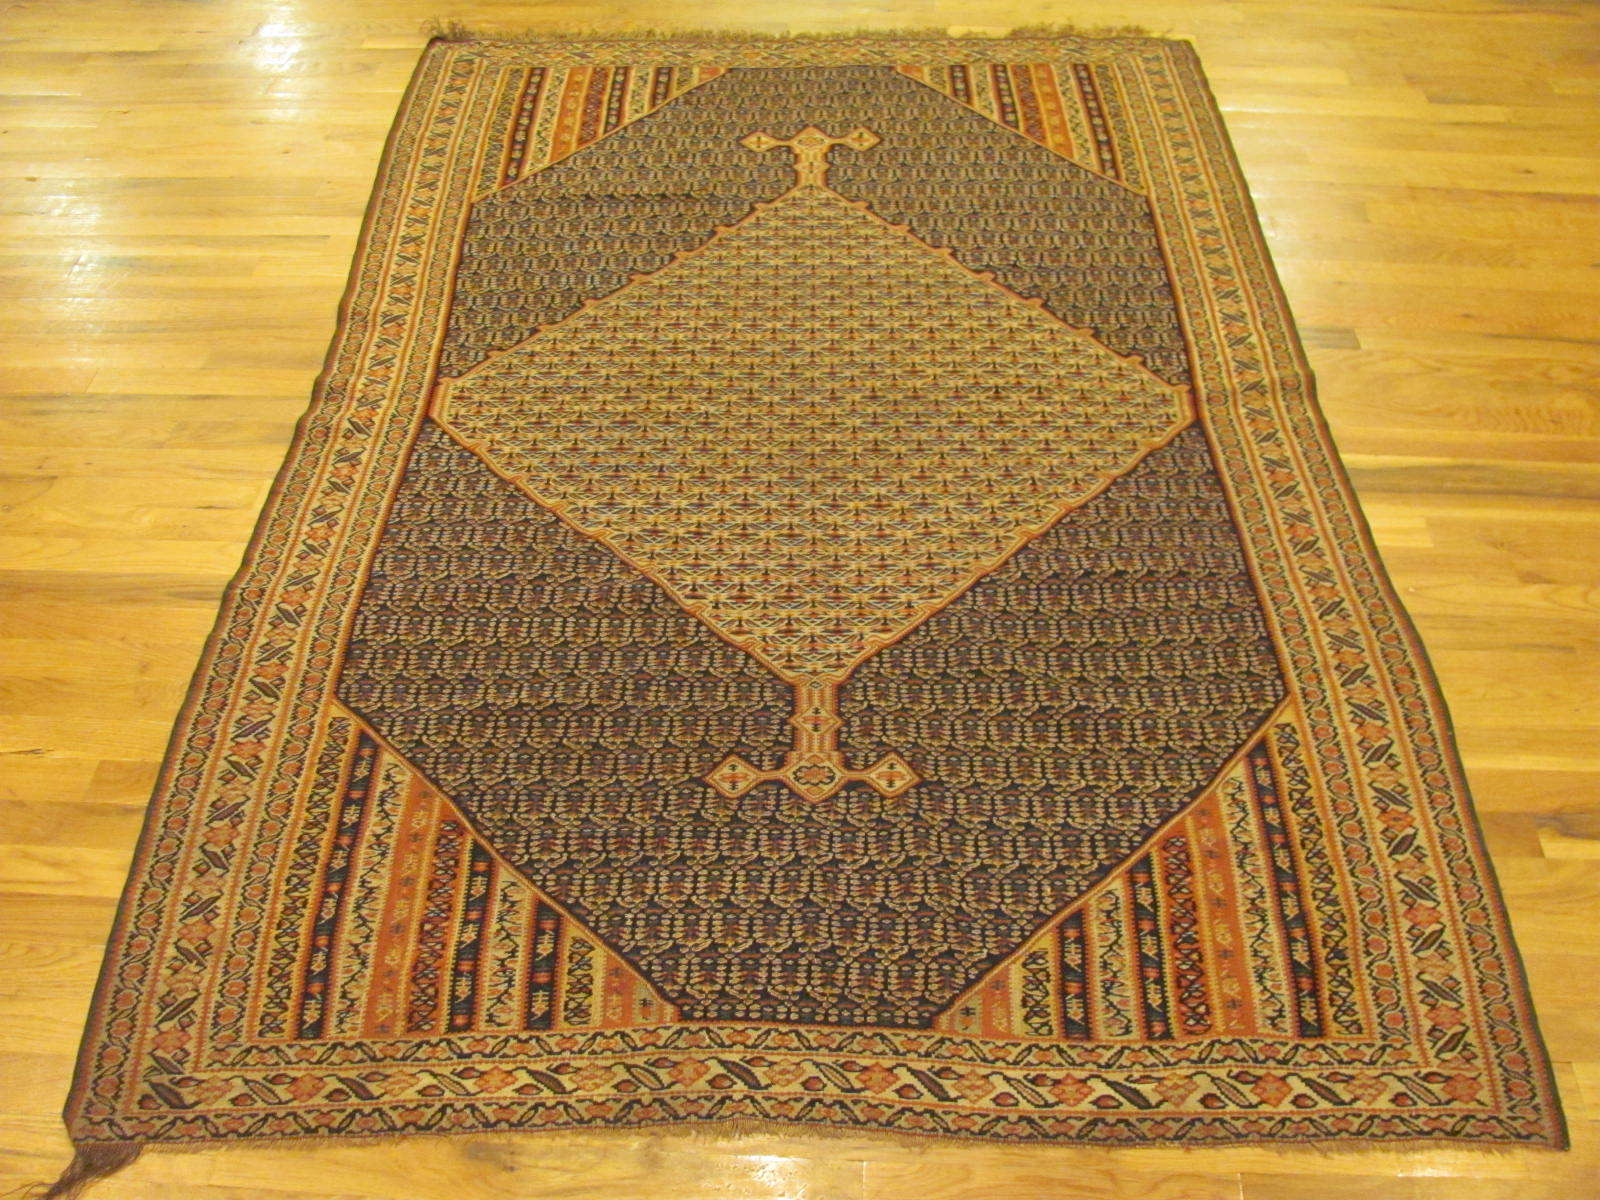 Senneh Rug | Persia | Early 19th c.